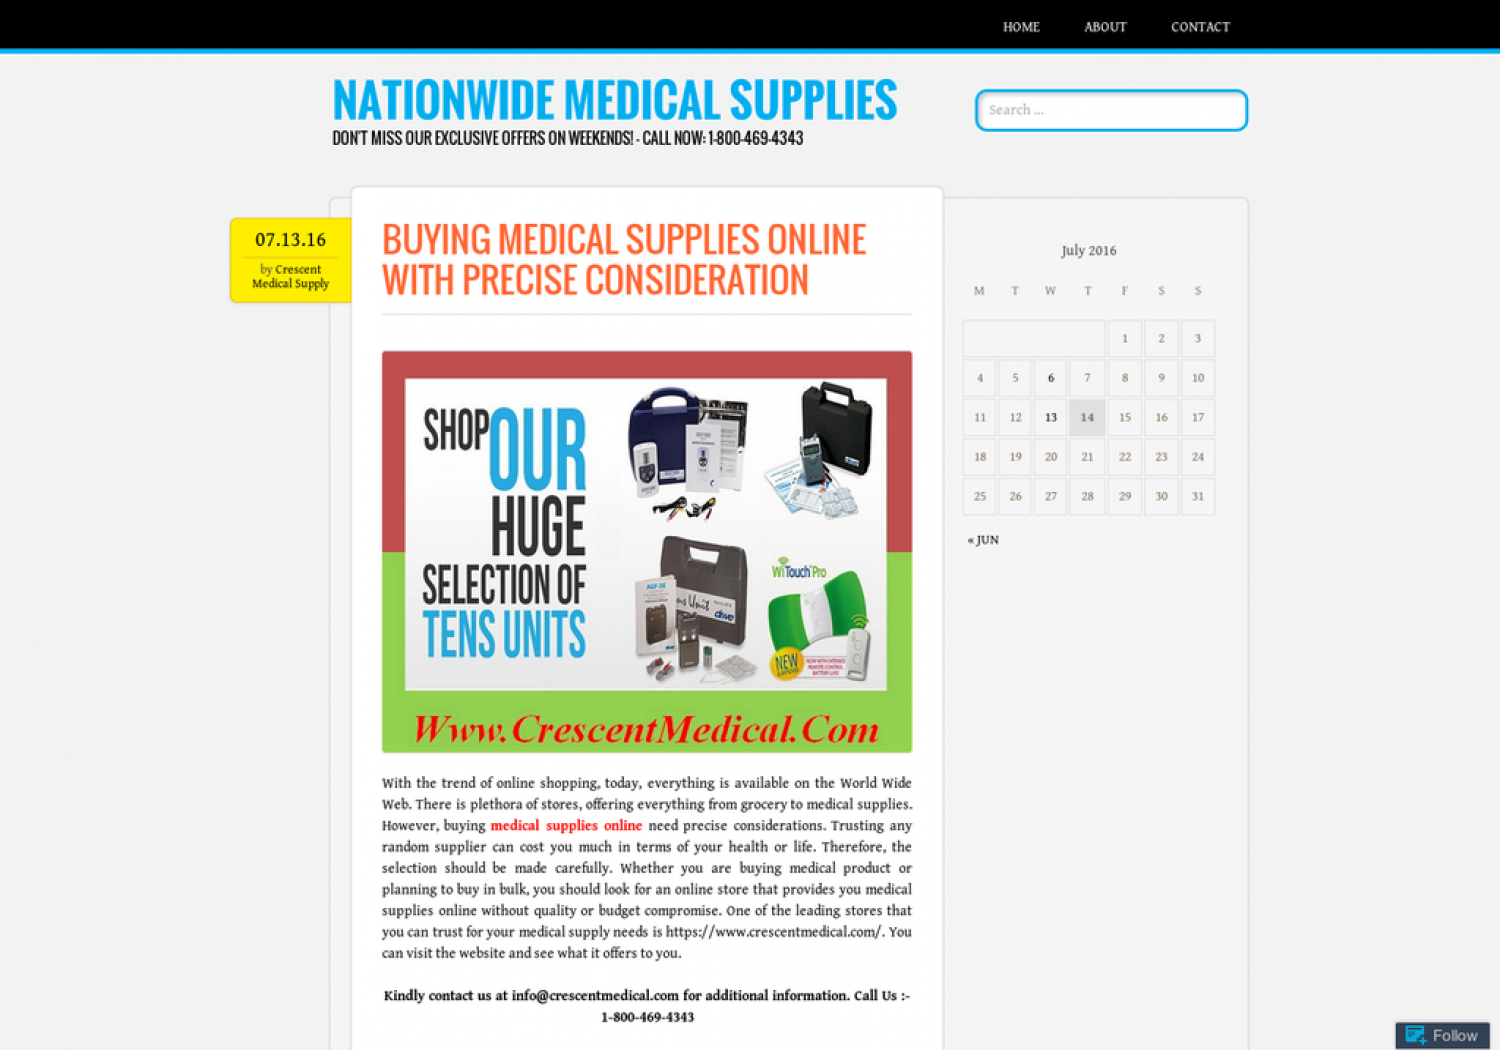 Buying Medical Supplies Online With Precise Consideration Infographic